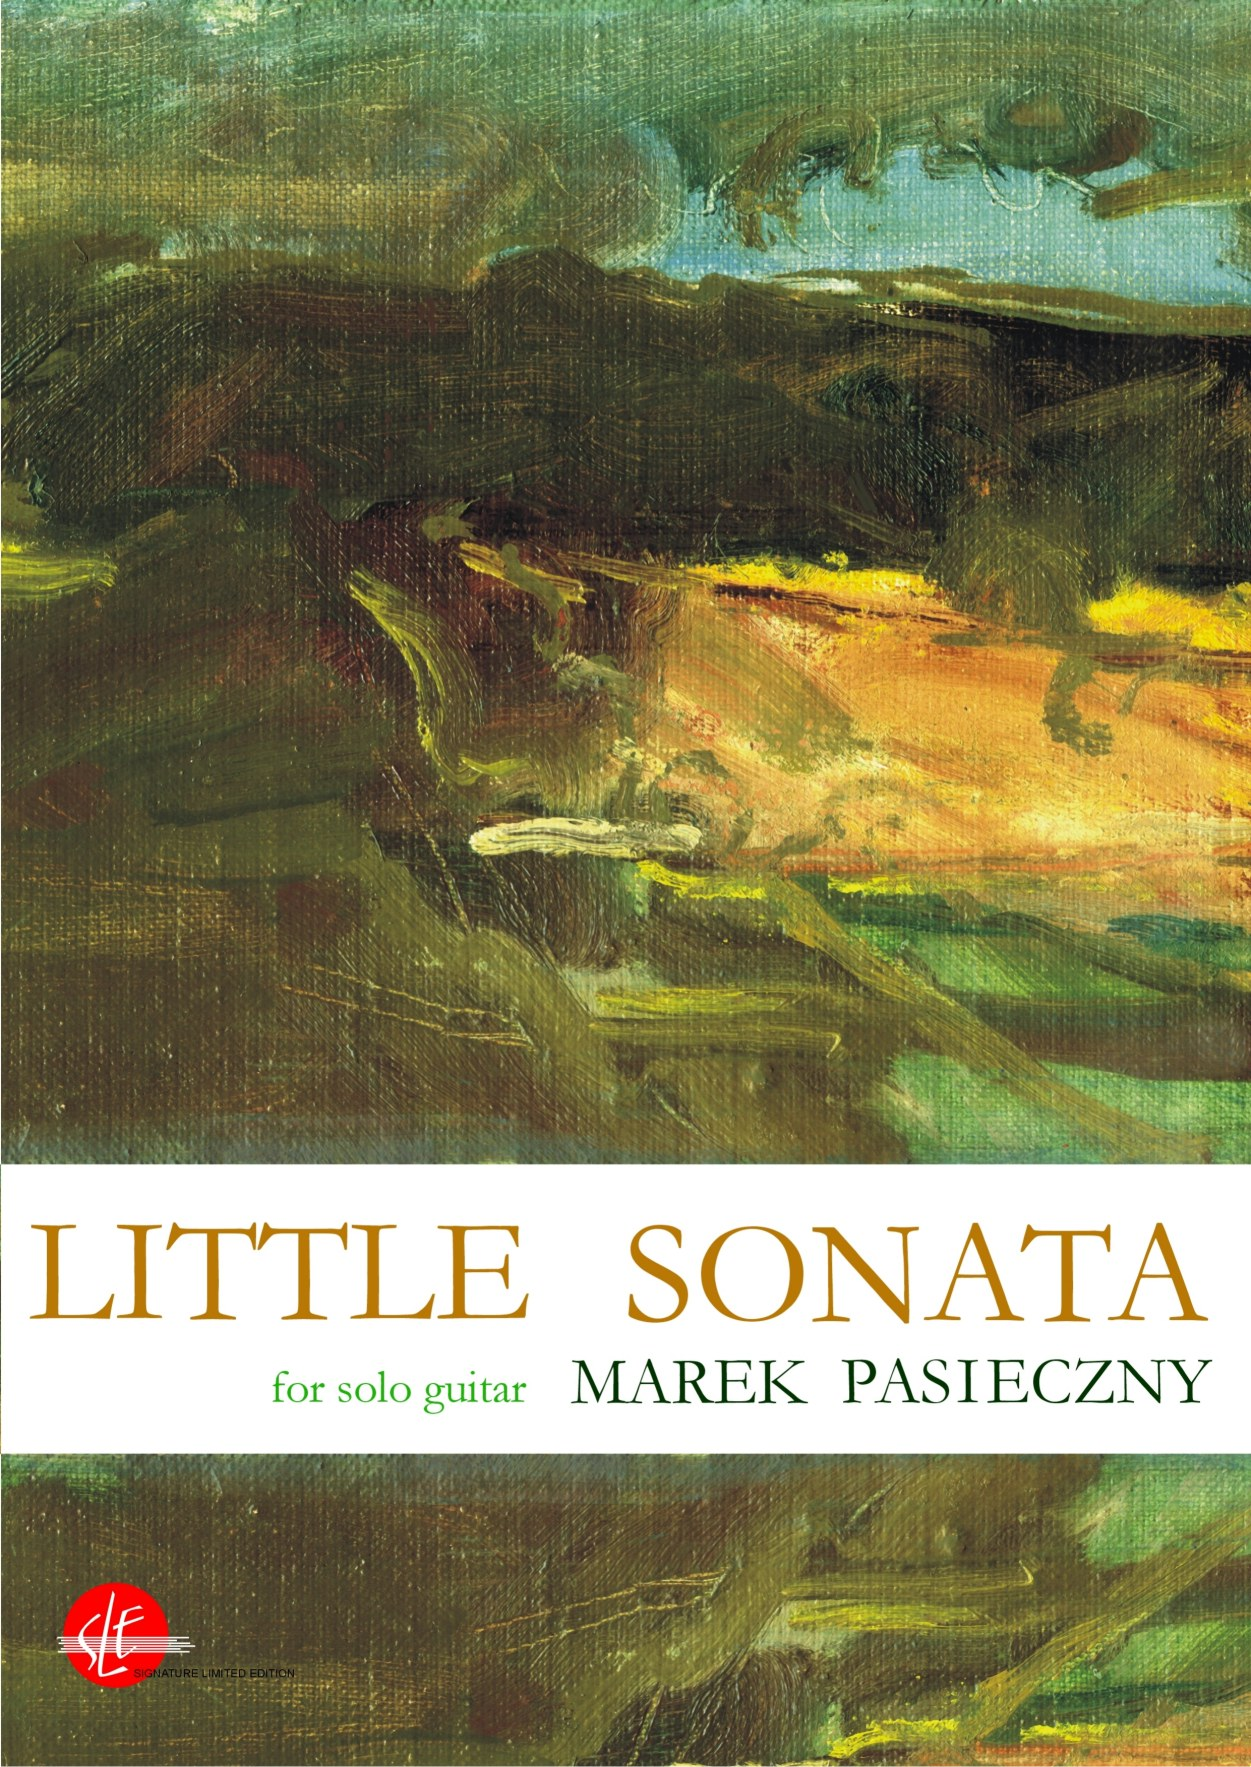 little sonata by marek pasieczny (cover)